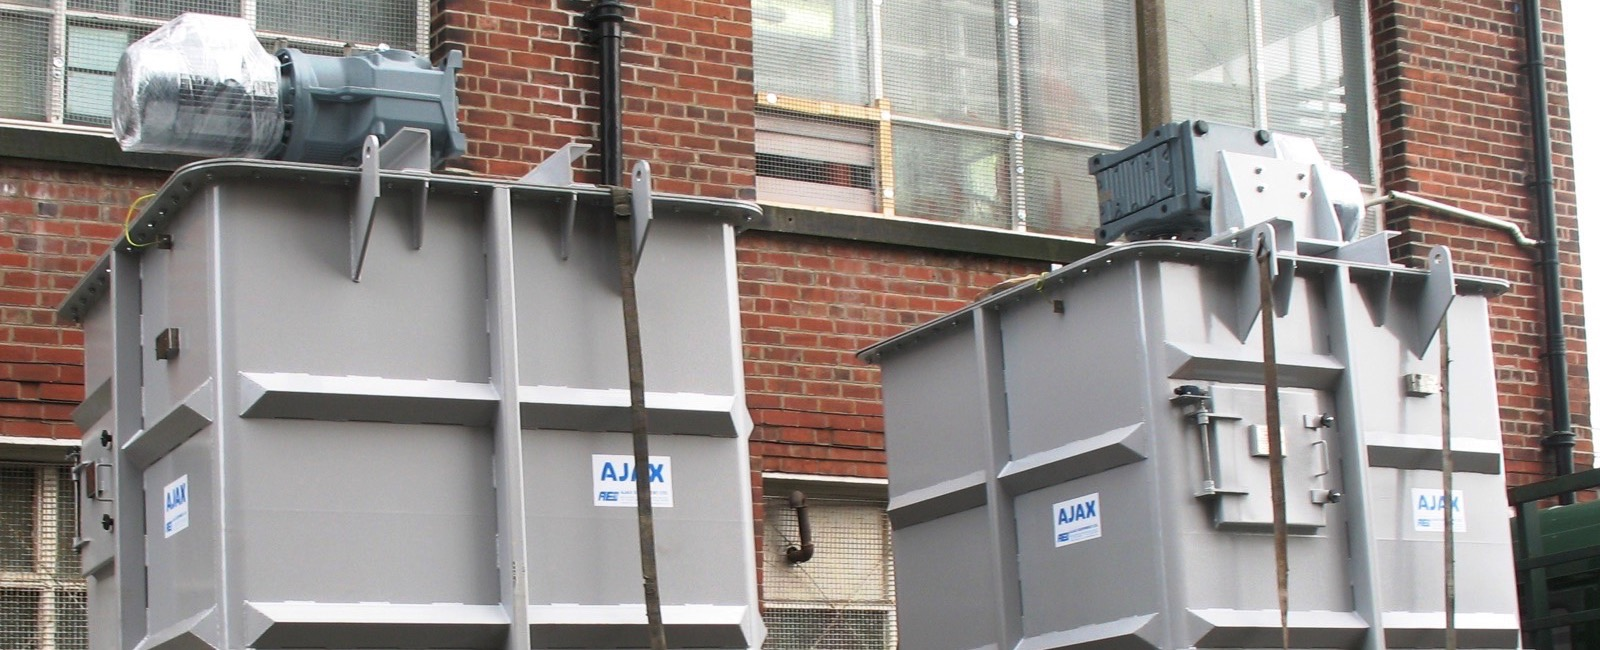 Ajax: Compact Silo Cascade Mixer Space-Saving Alternative to conventional Conical Hoppers